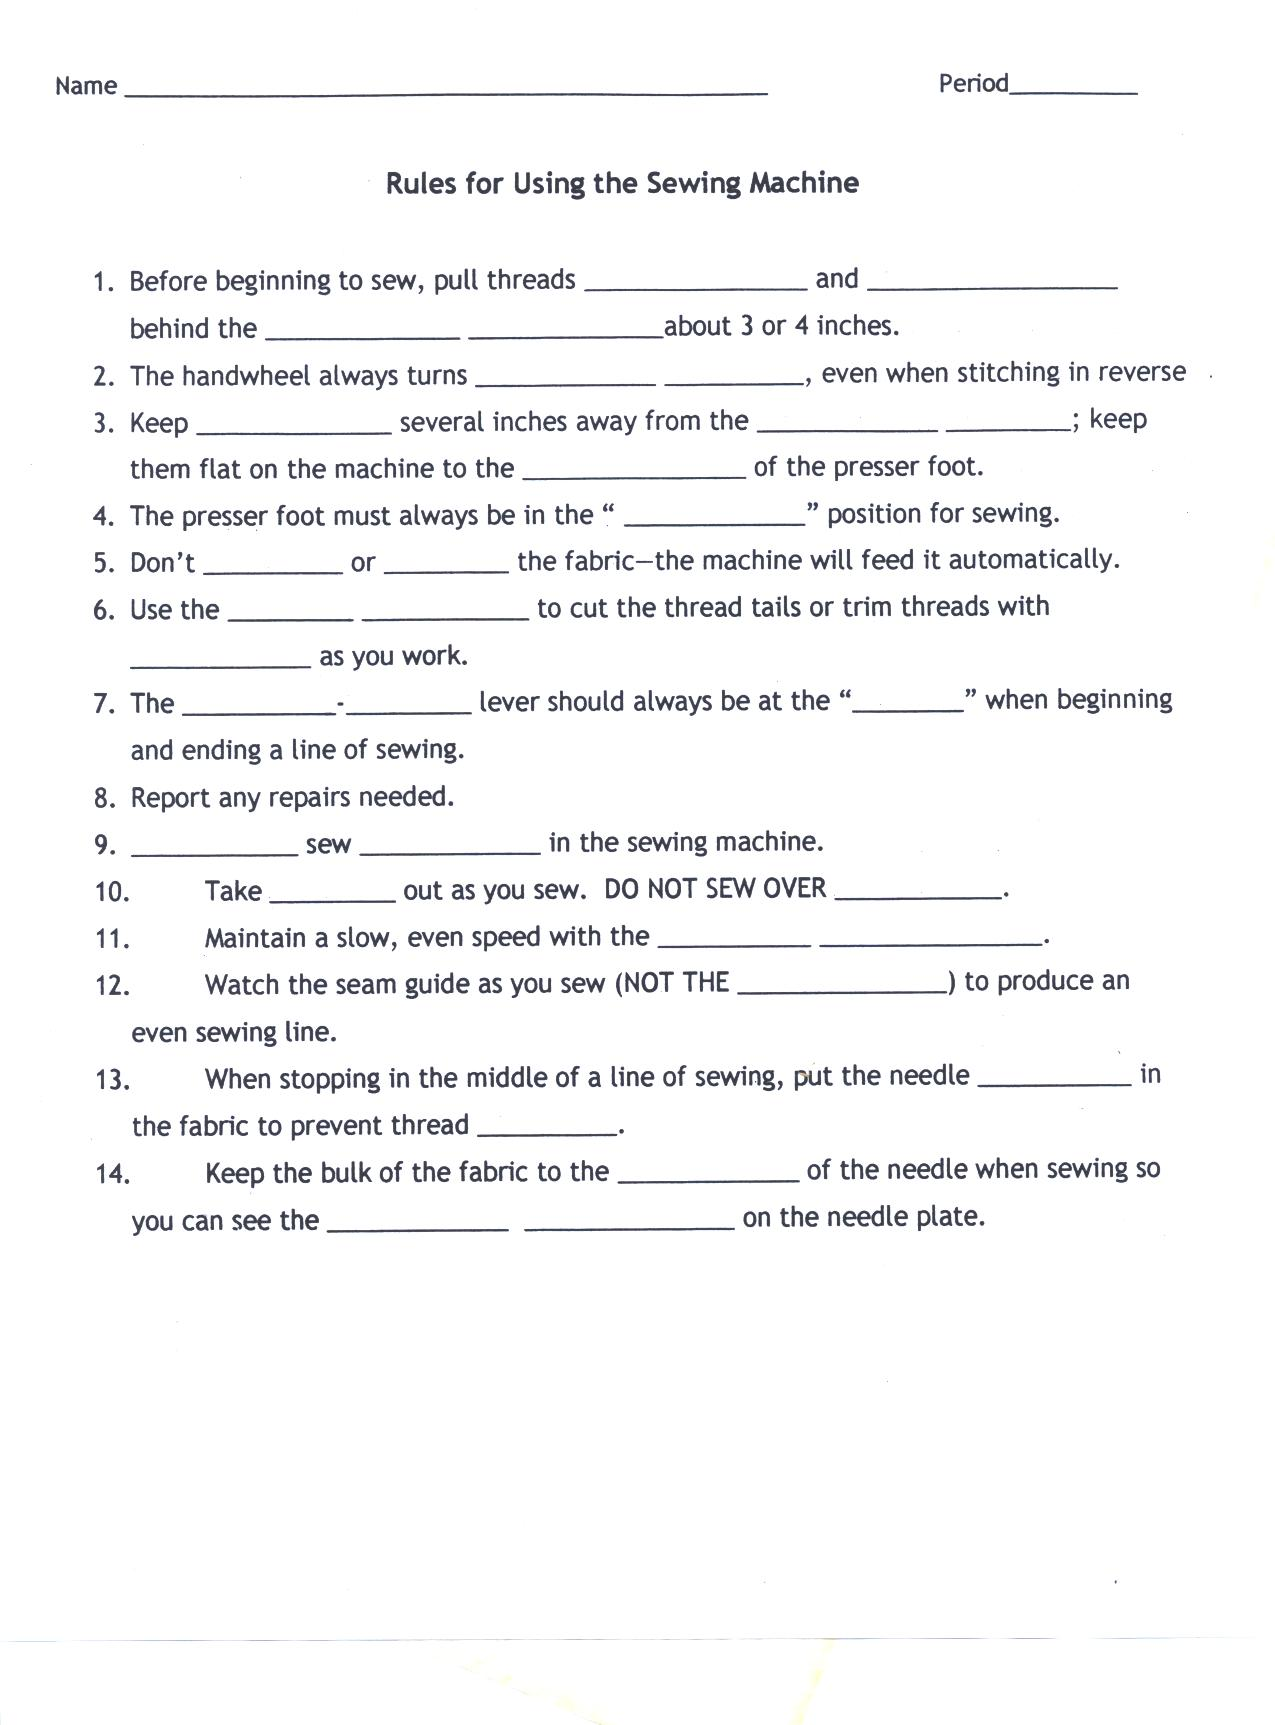 worksheet Sewing Worksheets sewing rules attachments